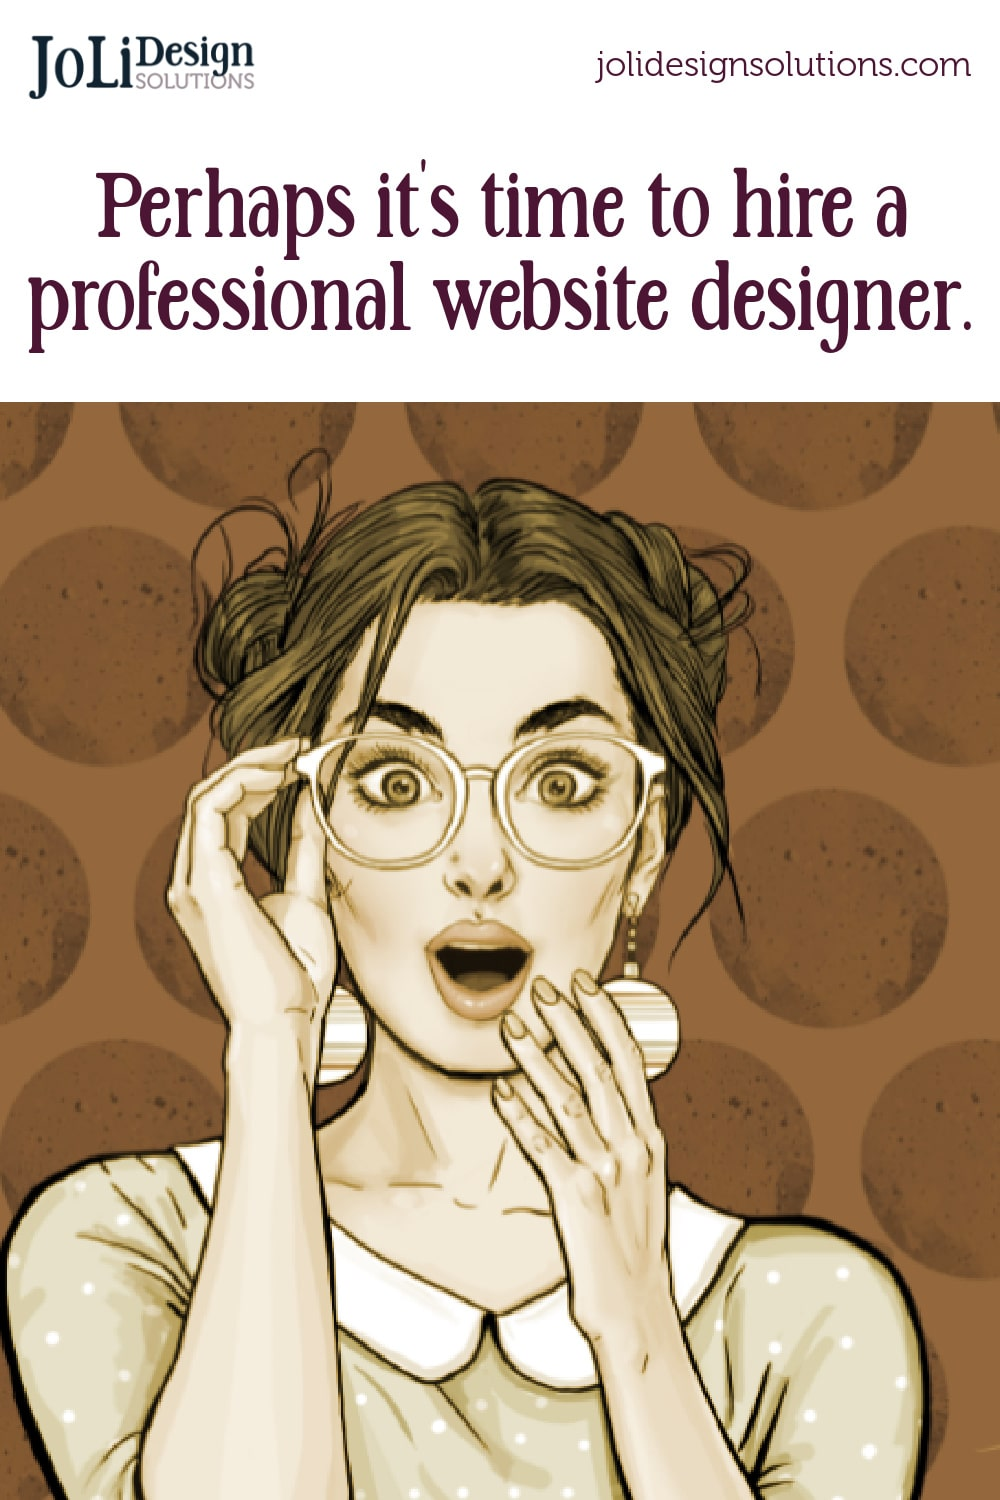 hiring a web designer - illustrated lady with surprised look